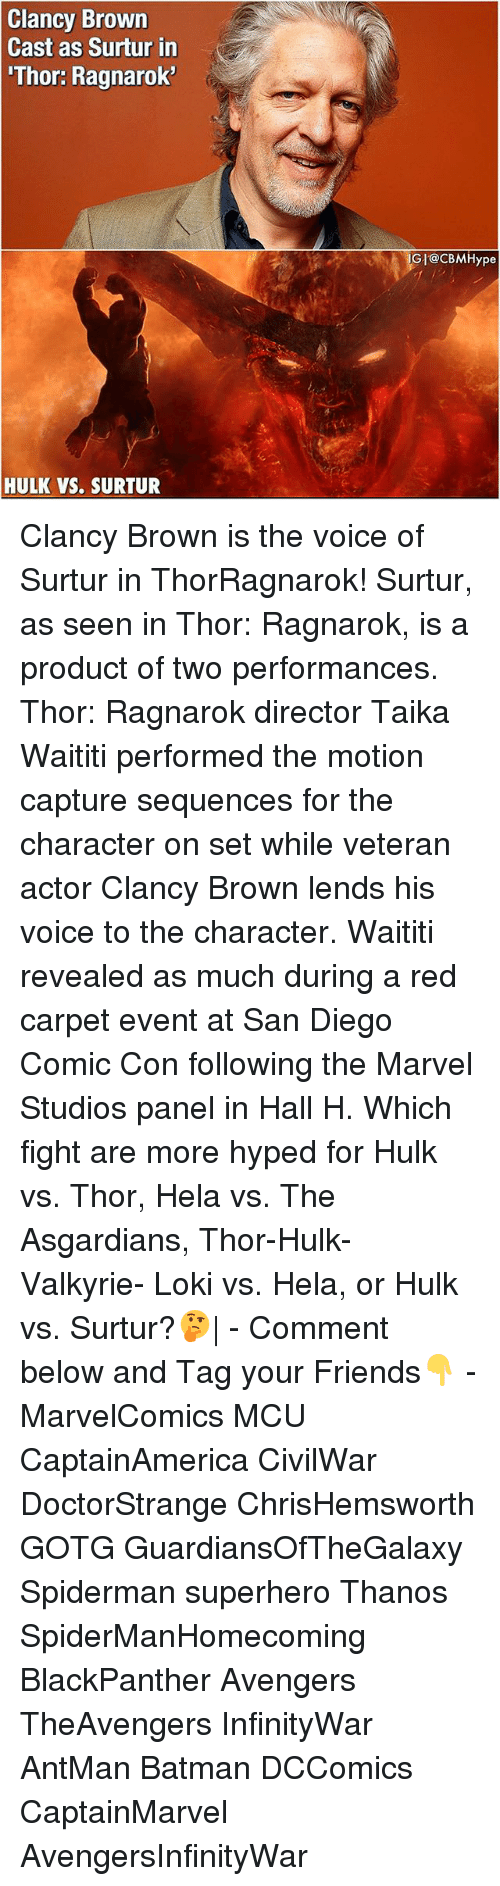 valkyrie: Clancy Brown  Cast as Surtur in  'Thor: Ragnarok  GI@cBMHype  HULK VS. SURTUR Clancy Brown is the voice of Surtur in ThorRagnarok! Surtur, as seen in Thor: Ragnarok, is a product of two performances. Thor: Ragnarok director Taika Waititi performed the motion capture sequences for the character on set while veteran actor Clancy Brown lends his voice to the character. Waititi revealed as much during a red carpet event at San Diego Comic Con following the Marvel Studios panel in Hall H. Which fight are more hyped for Hulk vs. Thor, Hela vs. The Asgardians, Thor-Hulk- Valkyrie- Loki vs. Hela, or Hulk vs. Surtur?🤔| - Comment below and Tag your Friends👇 - MarvelComics MCU CaptainAmerica CivilWar DoctorStrange ChrisHemsworth GOTG GuardiansOfTheGalaxy Spiderman superhero Thanos SpiderManHomecoming BlackPanther Avengers TheAvengers InfinityWar AntMan Batman DCComics CaptainMarvel AvengersInfinityWar